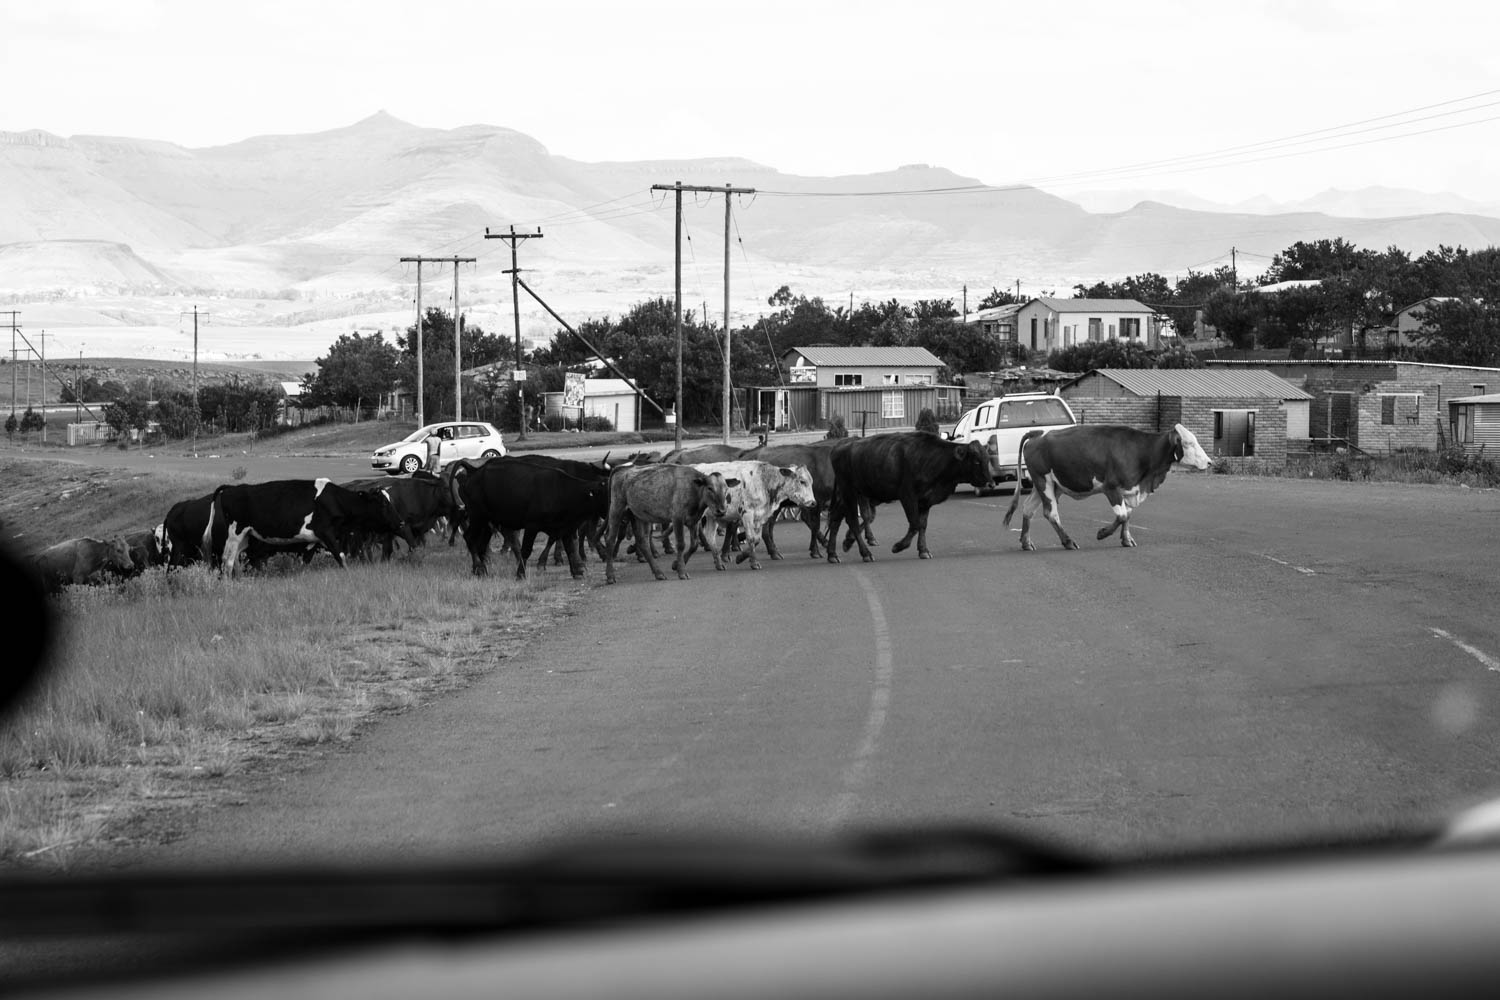 Cows Cross Road In Front Of Wedding Sportscar